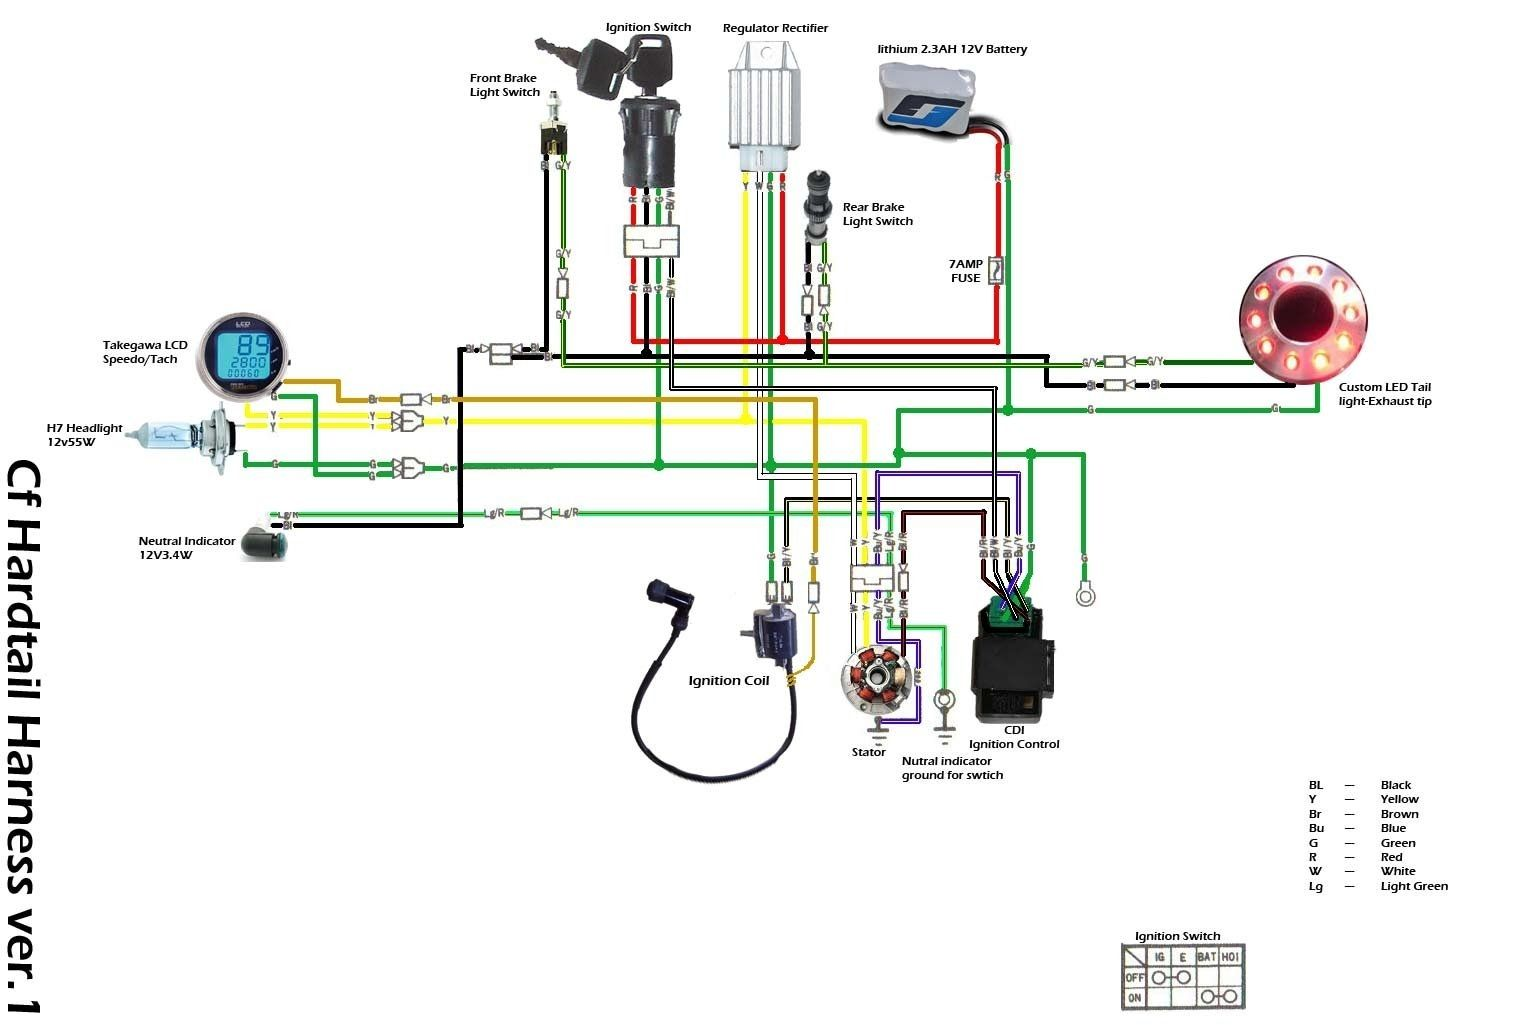 4 stroke basic motorcycle wiring diagram data diagram schematic basic motorcycle wiring diagram [ 1516 x 1025 Pixel ]